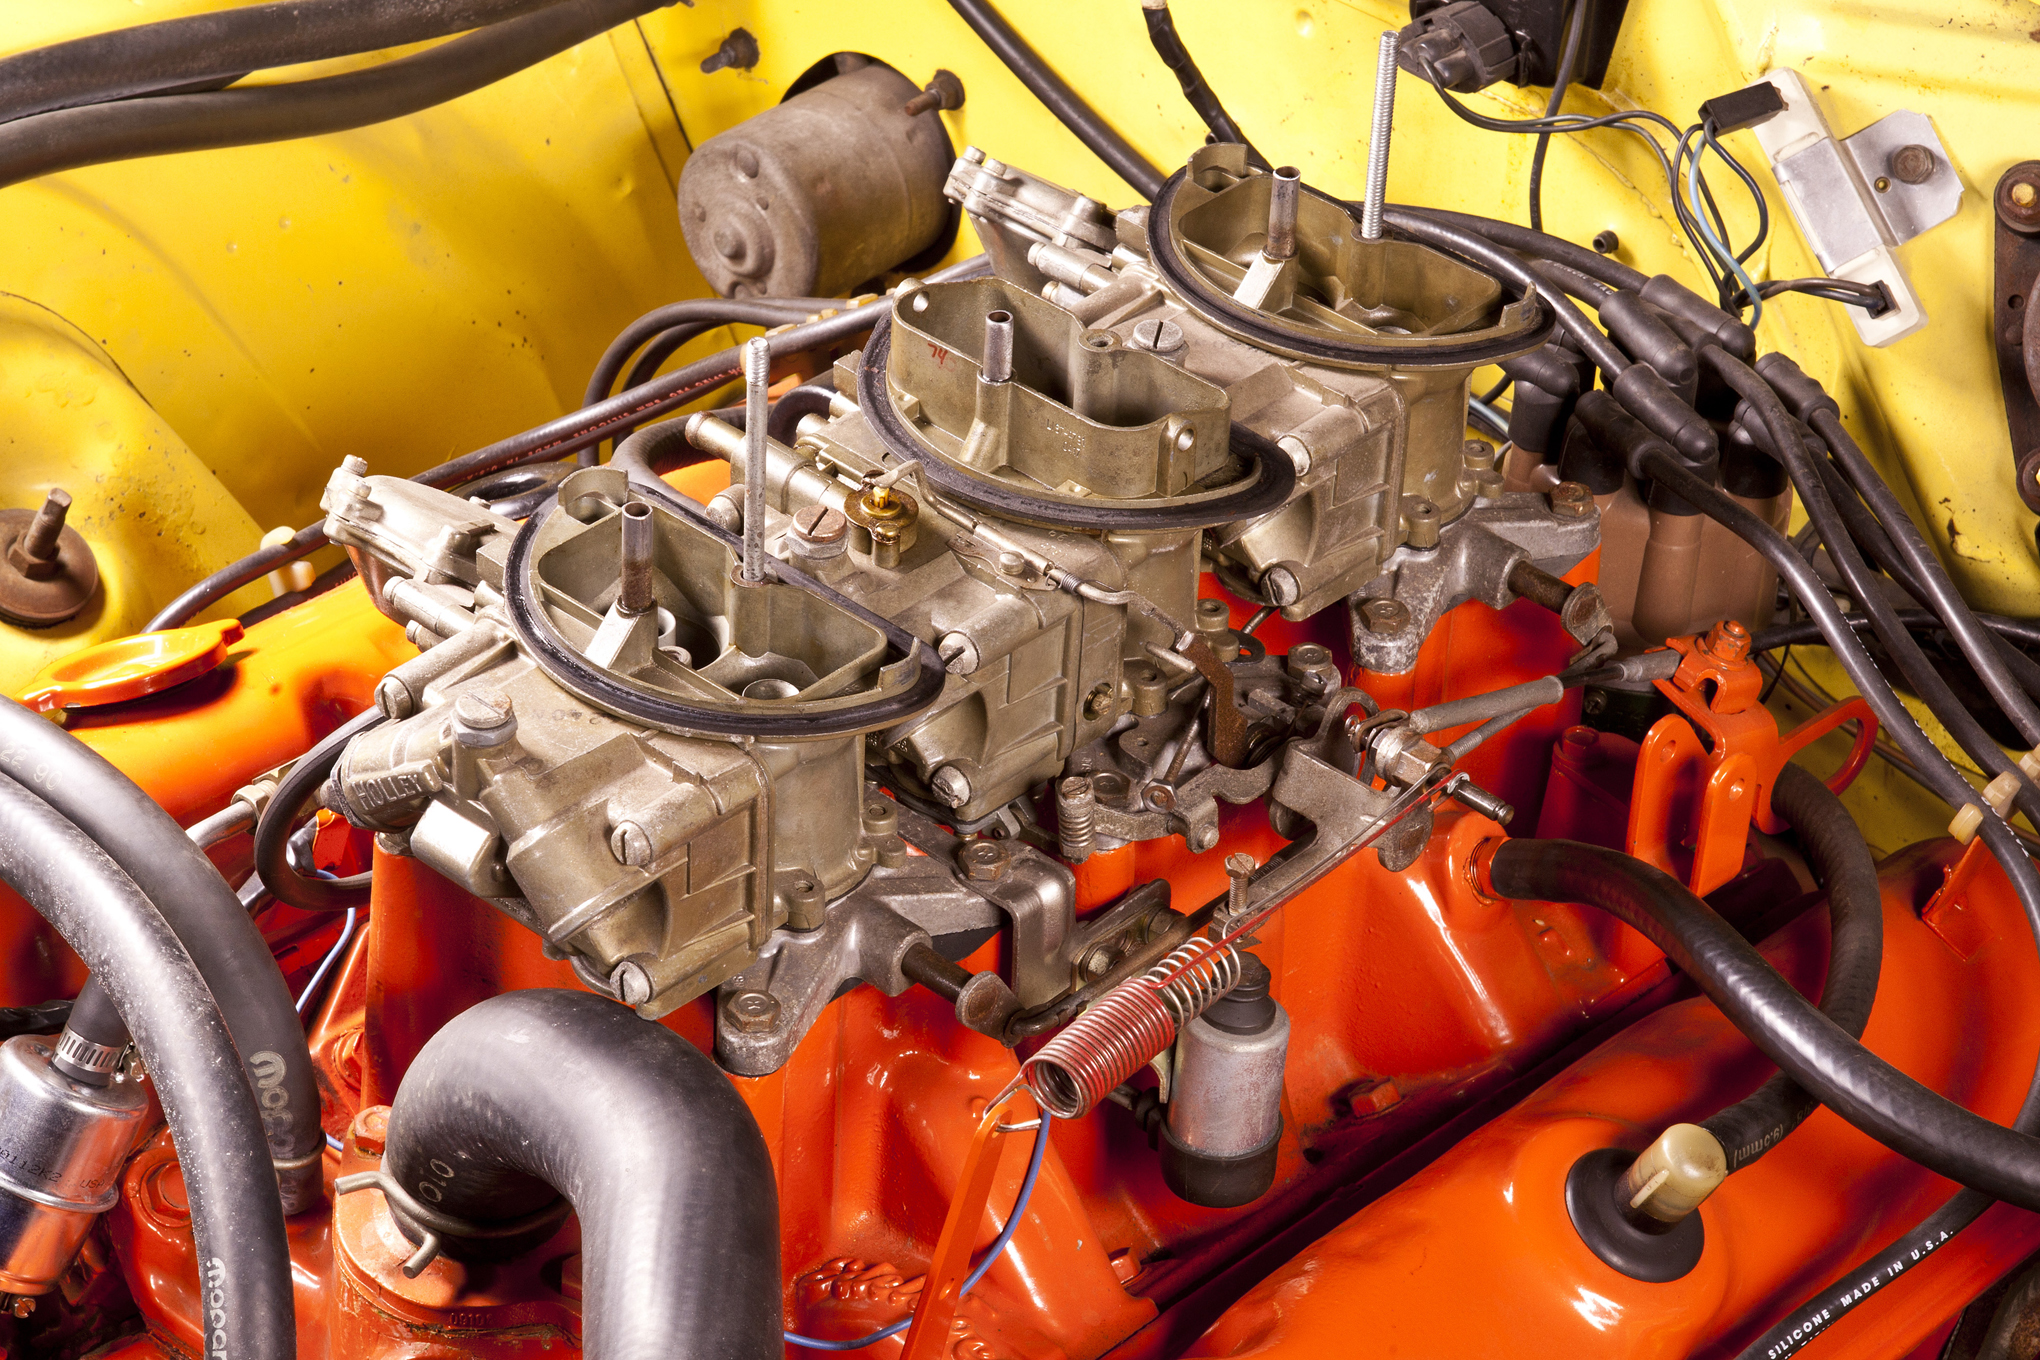 Wide open, the trio of Holley 2300 two-barrels flows 1,350 cfm. The vacuum-actuated end carbs come on gradually to prevent bog. The center carb has 1-1/2-inch throttle plates, smaller than the 1-3/4-inch end plates. Though cast by Edelbrock, Chrysler designed the triple-carb 340 intake manifold.